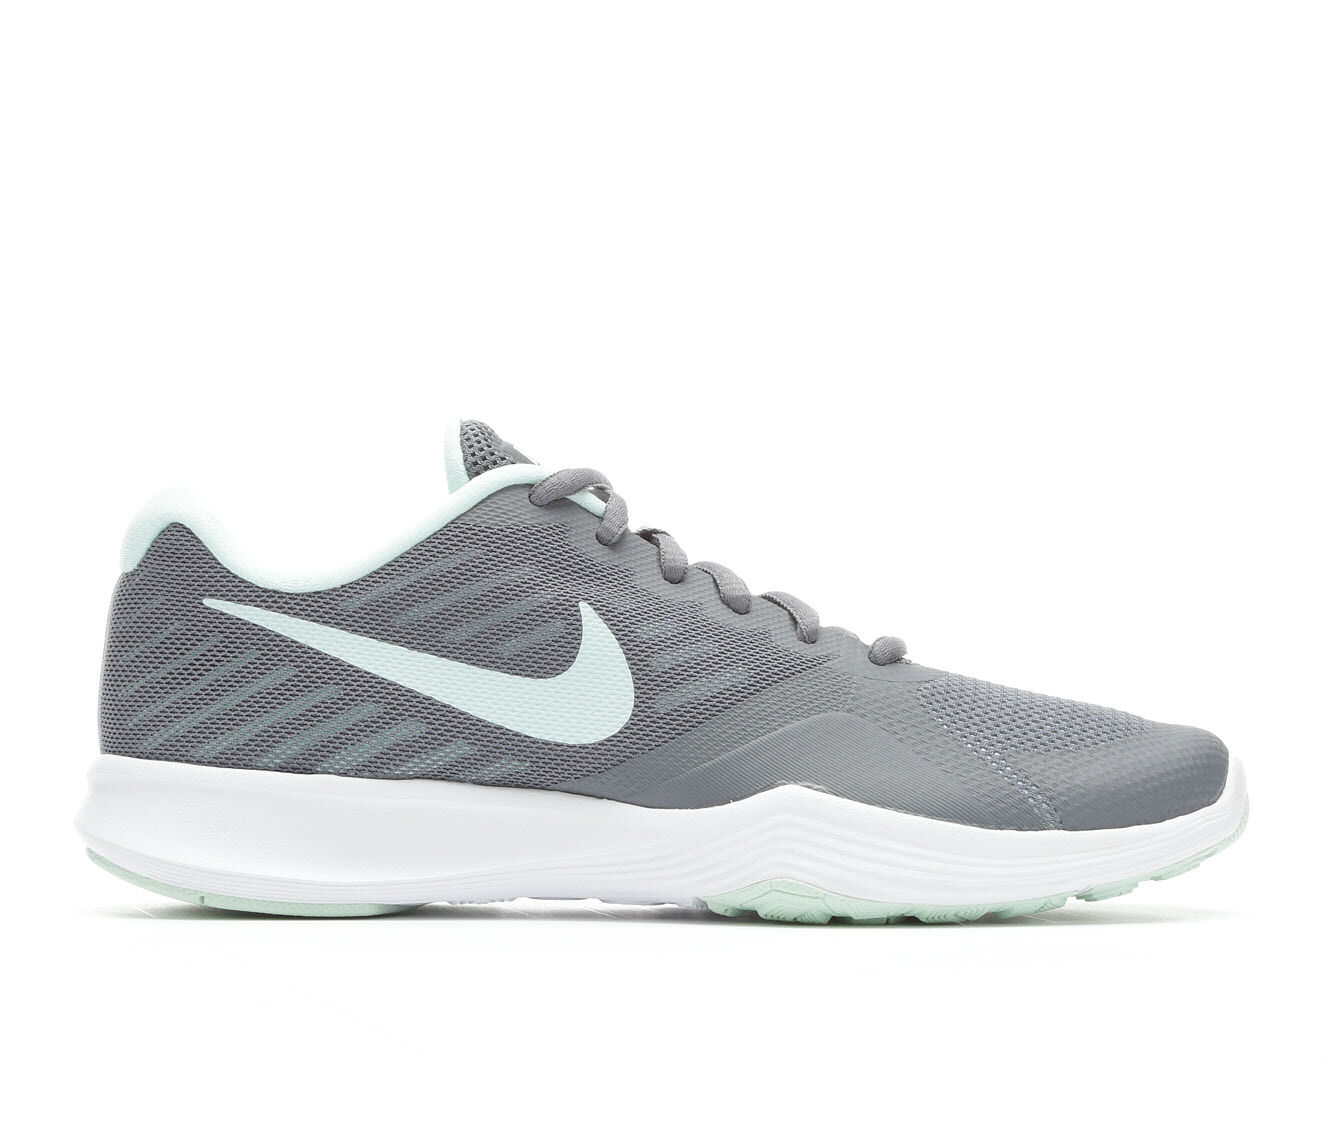 Images. Women's Nike City Trainer Training Shoes